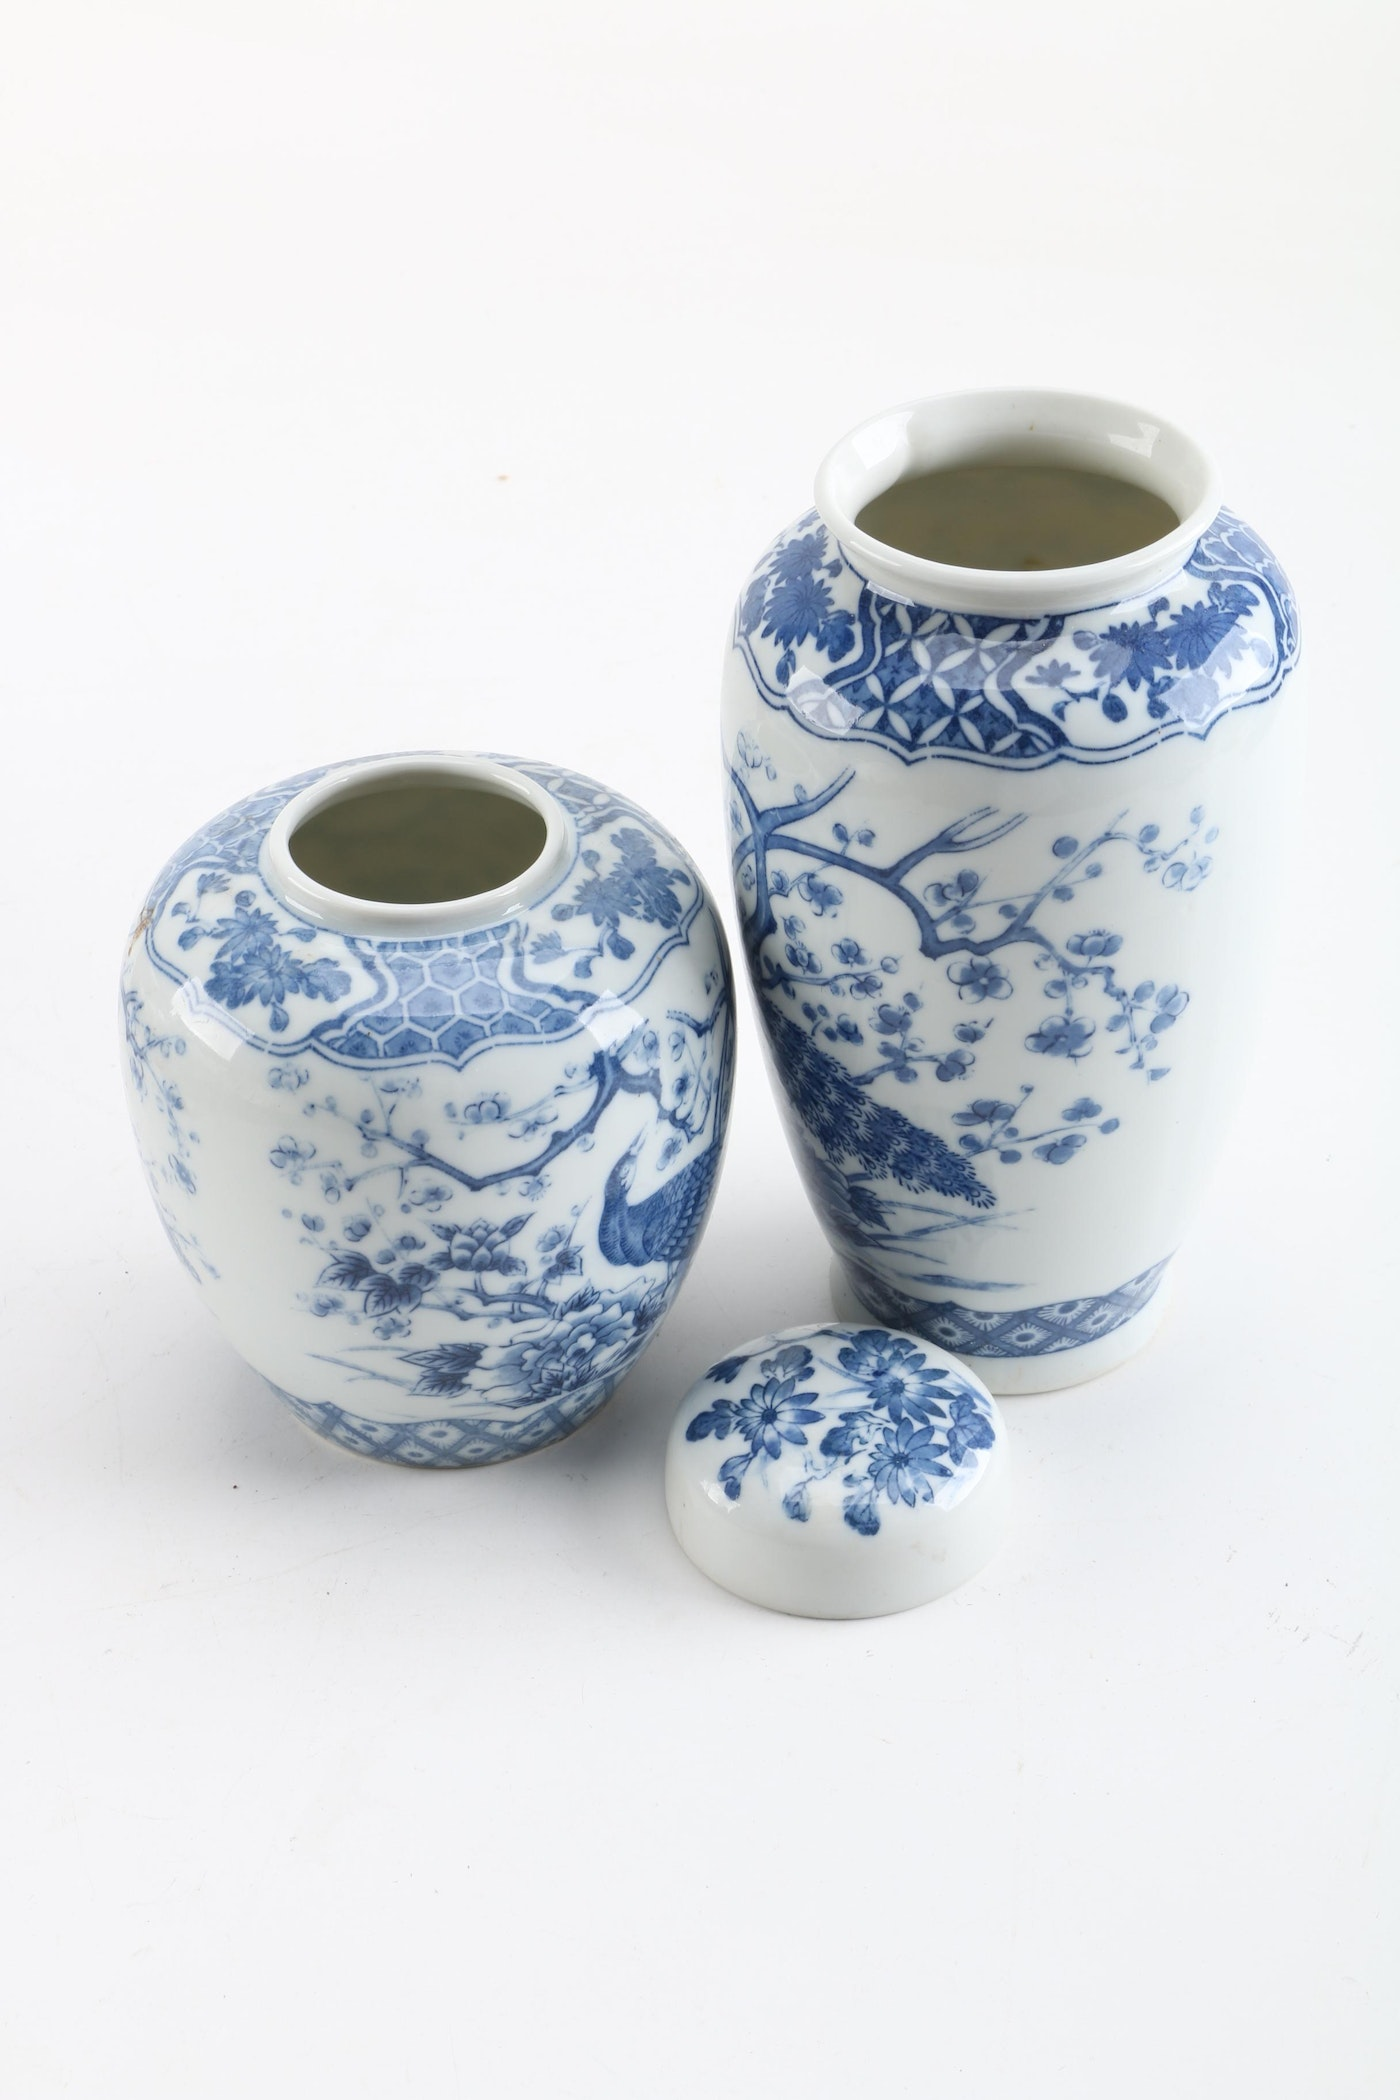 Auto Palace Columbus >> Japanese Blue and White Porcelain Peacock Vase and Jar | EBTH